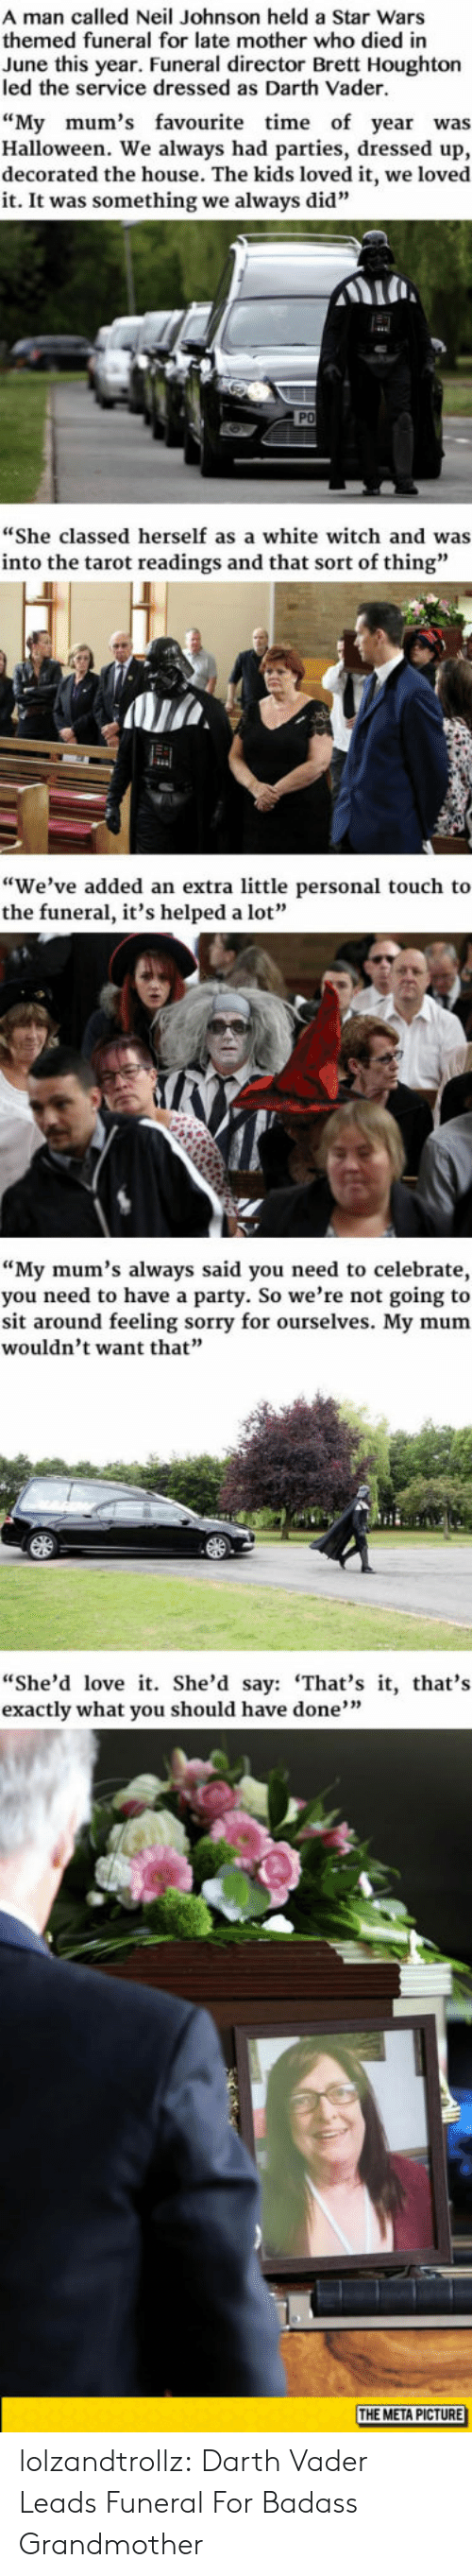 """Darth Vader: A man called Neil Johnson held a Star Wars  themed funeral for late mother who died in  June this year. Funeral director Brett Houghton  led the service dressed as Darth Vader.  """"My mum's favourite time of year was  Halloween. We always had parties, dressed up,  decorated the house. The kids loved it, we loved  it. It was something we always did""""  PO  """"She classed herself as a white witch and was  into the tarot readings and that sort of thing""""  """"We've added an extra little personal touch to  the funeral, it's helped a lot""""  """"My mum's always said you need to celebrate,  you need to have a party. So we're not going to  sit around feeling sorry for ourselves. My mum  wouldn't want that""""  """"She'd love it. She'd say: 'That's it, that's  exactly what you should have done""""  THE META PICTURE lolzandtrollz:  Darth Vader Leads Funeral For Badass Grandmother"""